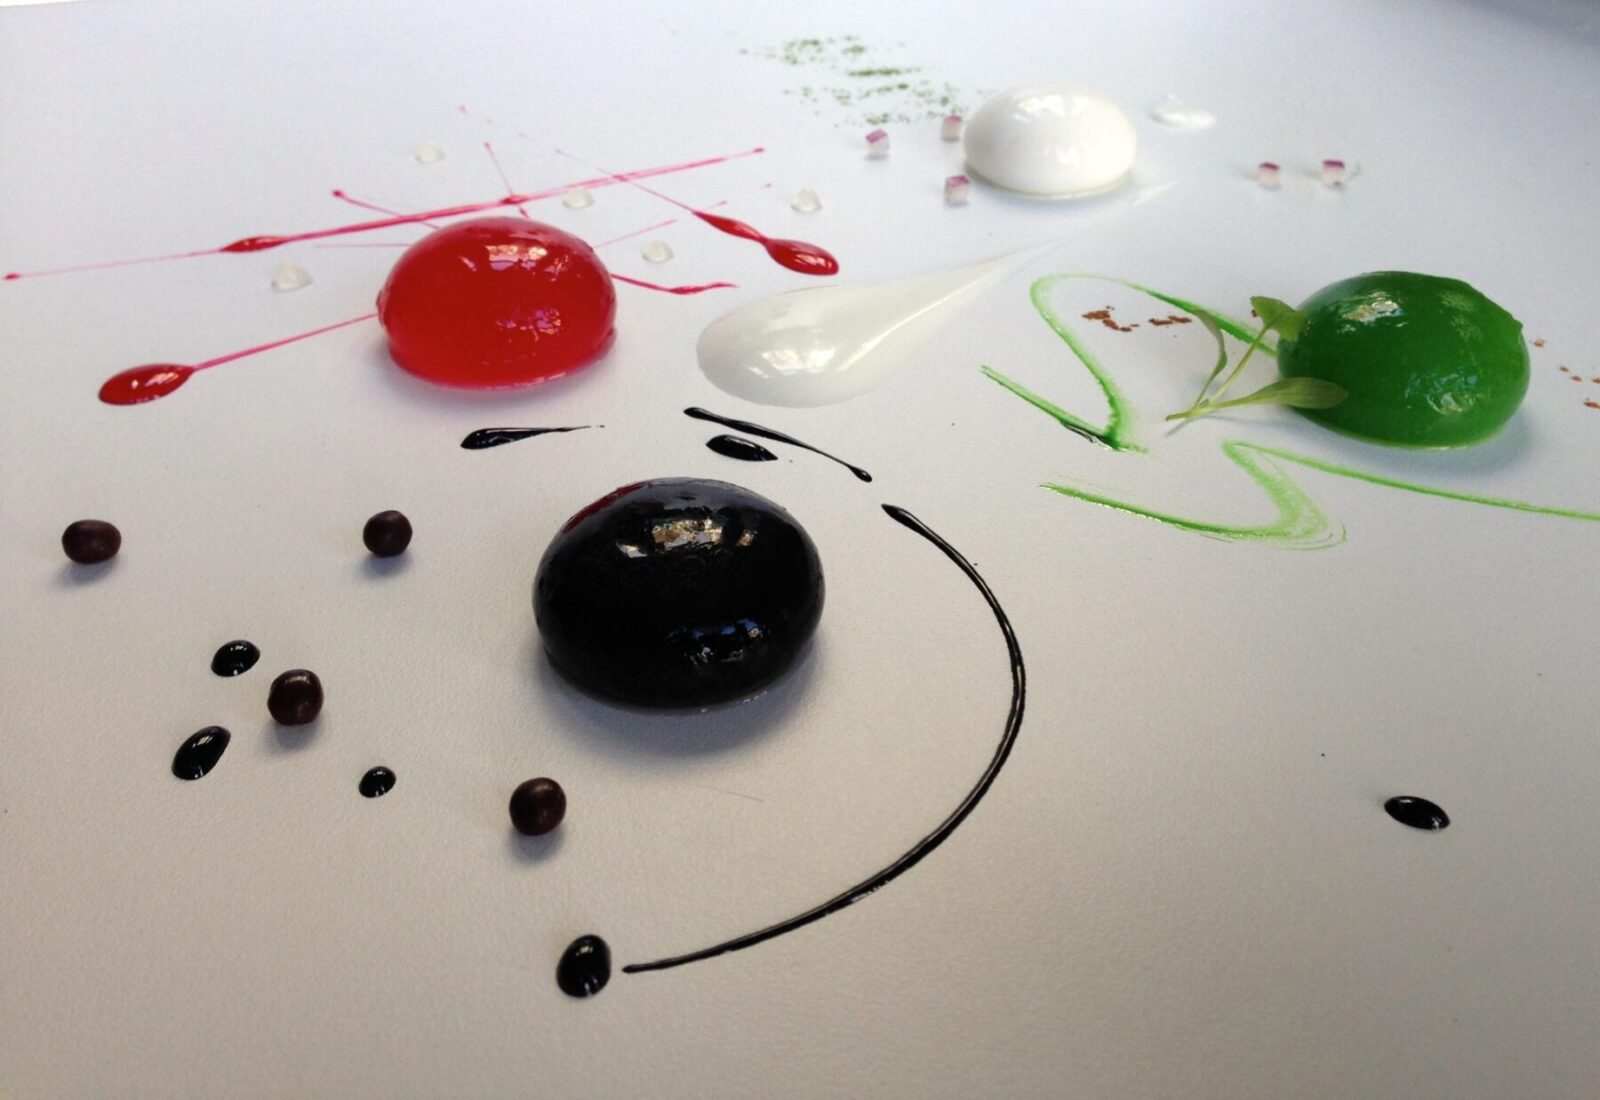 molecular gastronomy understanding the concept Develop a thorough understanding of the science of molecular gastronomy, we  need to  enlightenment thought embraced the idea of progress, and actively .